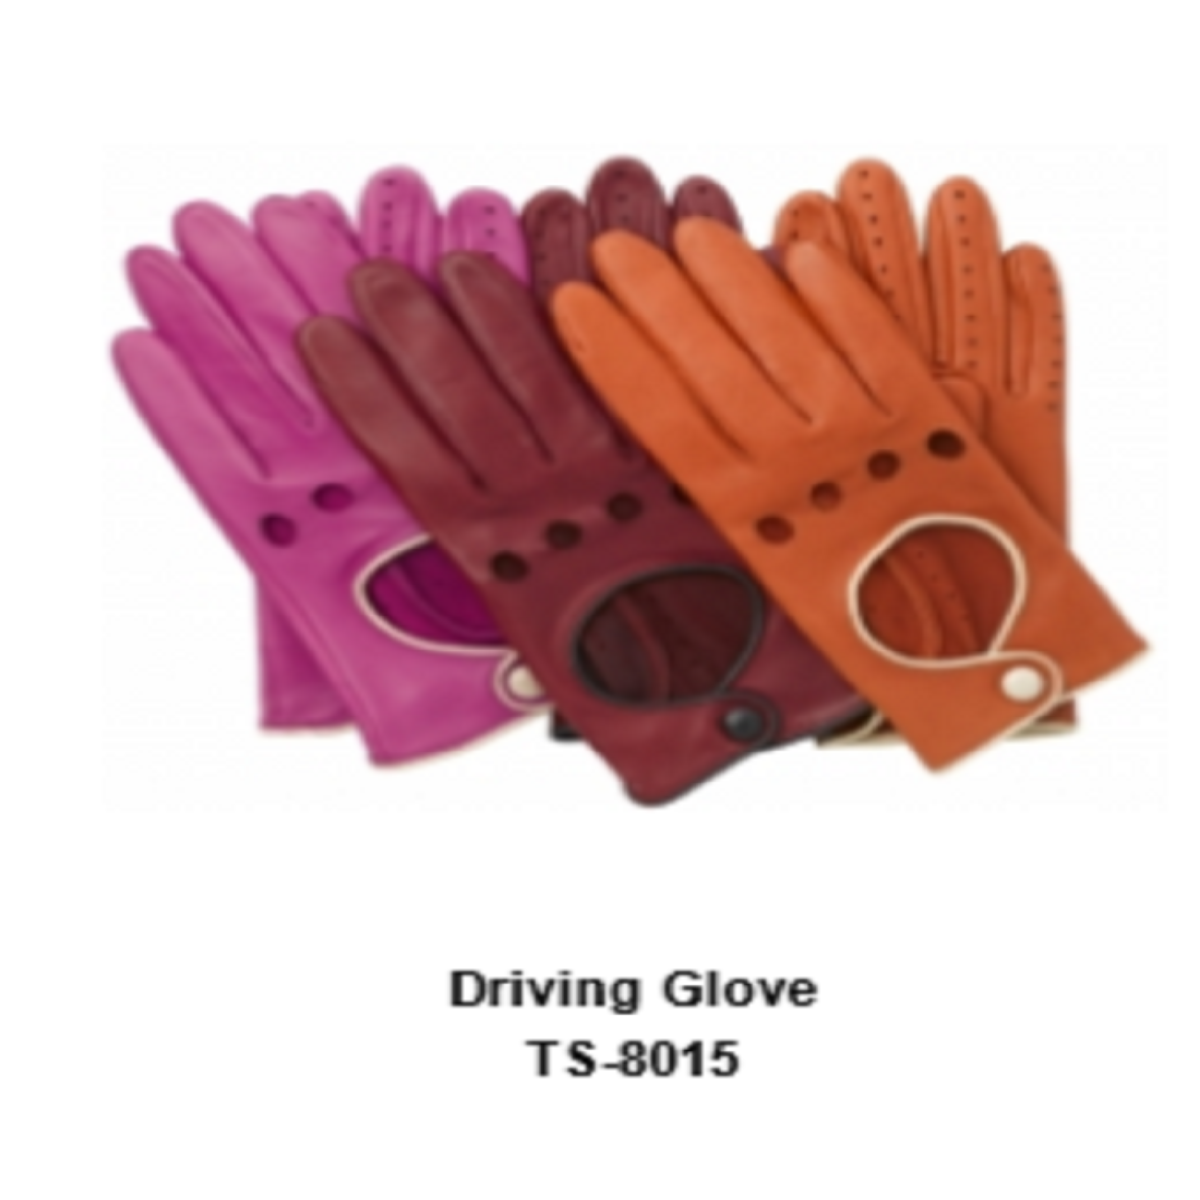 Leather Men's Fashion Driving Gloves Model No. TSI 8015